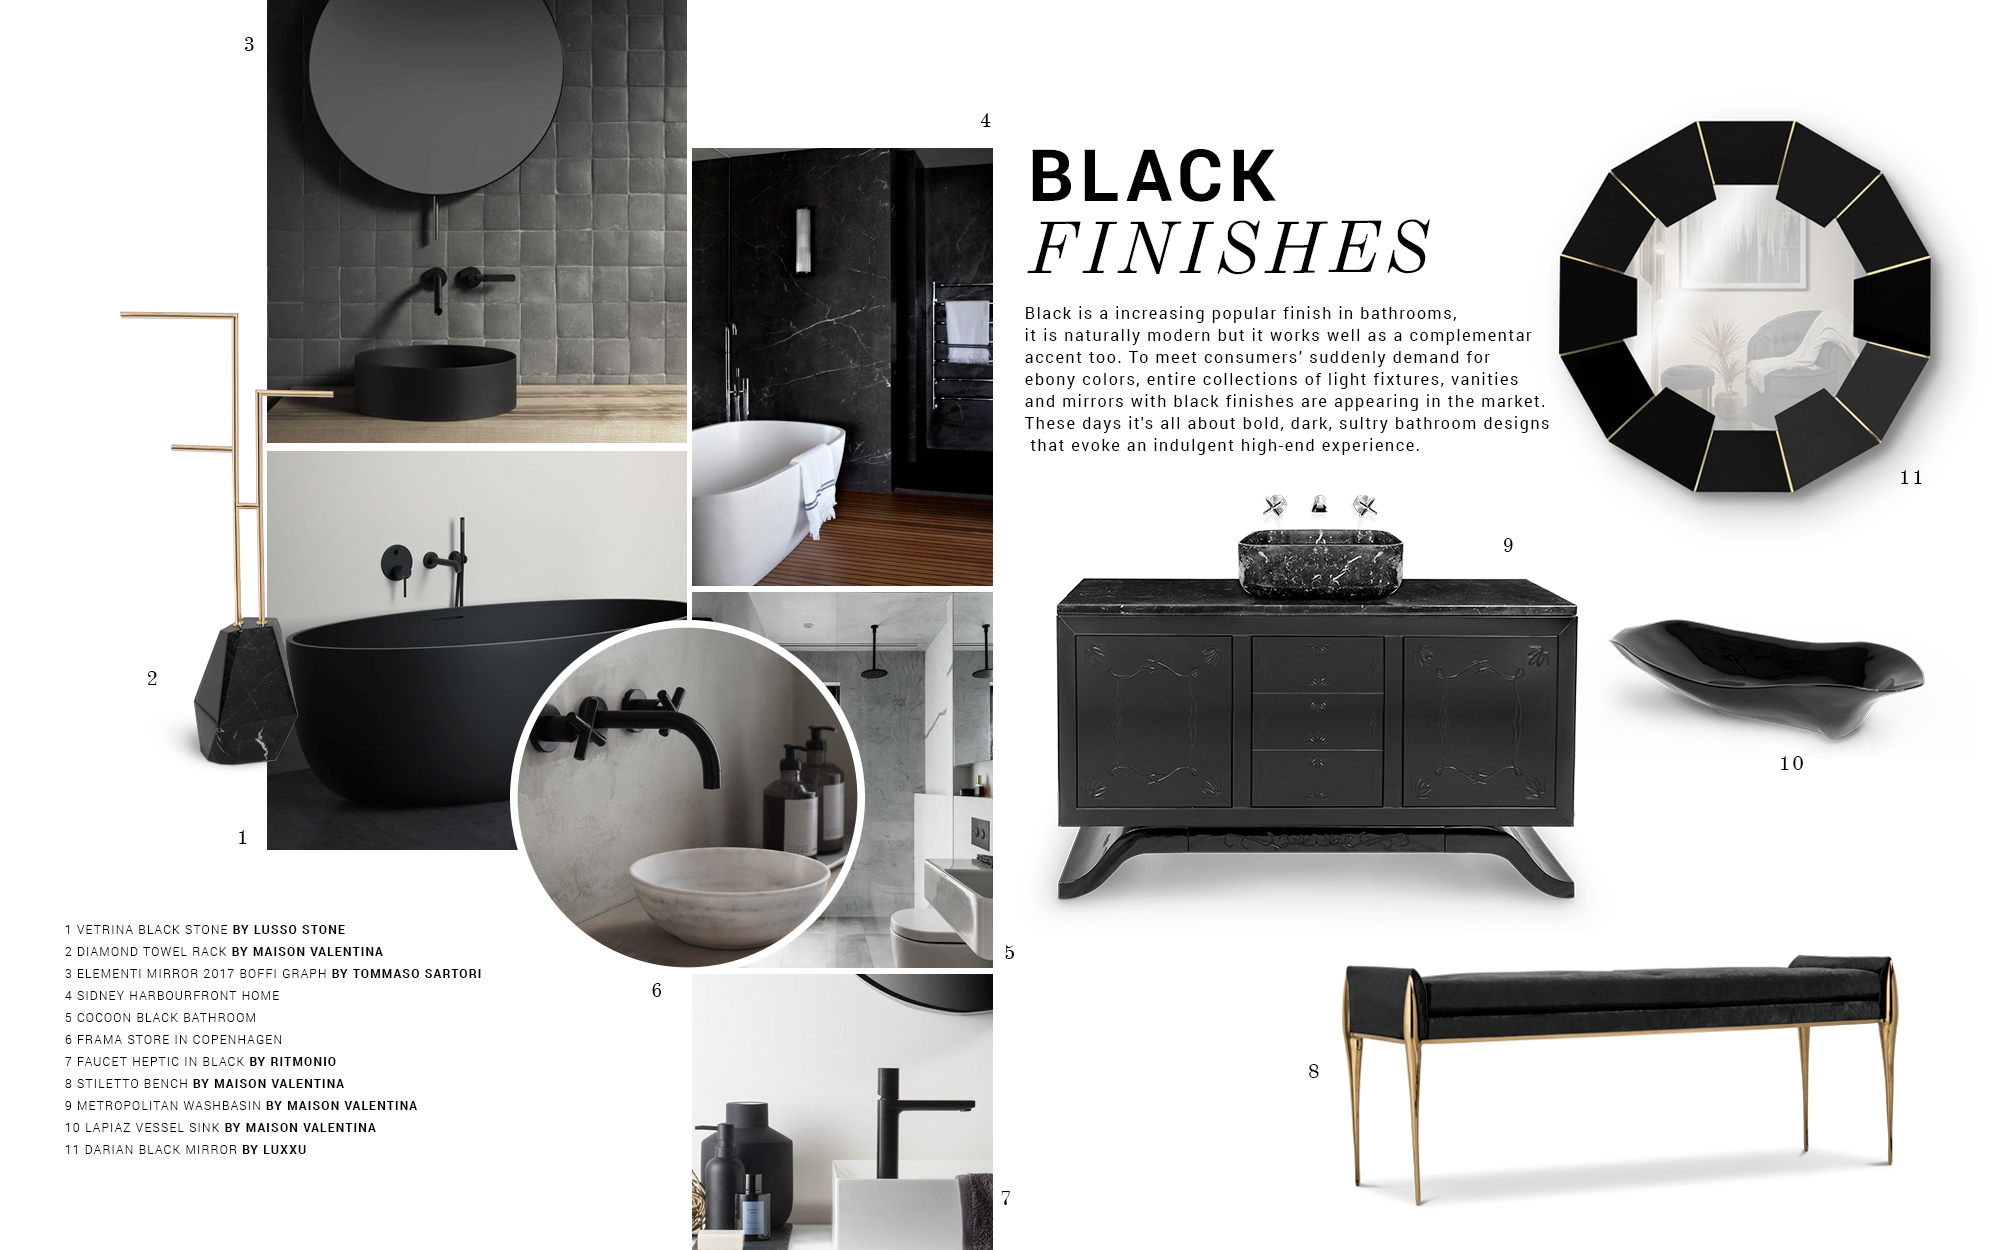 Bathroom Trends: Black Finishes cersaie bologna 2019 What You Need to Know About Cersaie Bologna 2019 moodboard trends maison valentina black finishes cersaie bologna 2019 What You Need to Know About Cersaie Bologna 2019 moodboard trends maison valentina black finishes